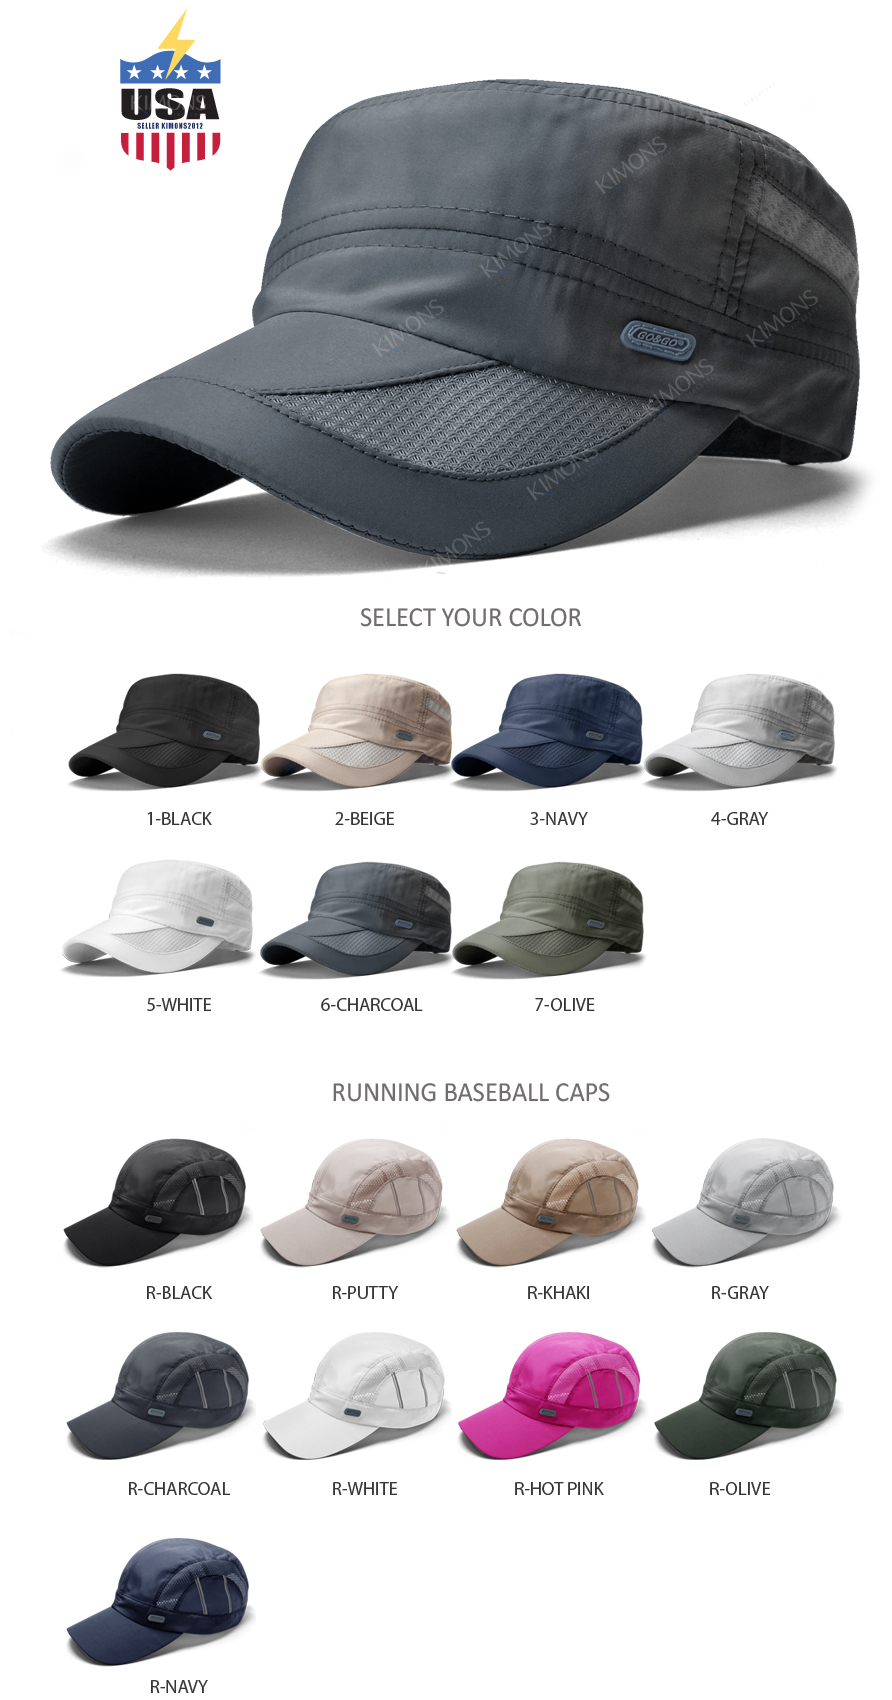 54f0d936 Details about Men's Classic Army Summer Military Cap Hat Cadet Patrol Style  Brim Spring Summer